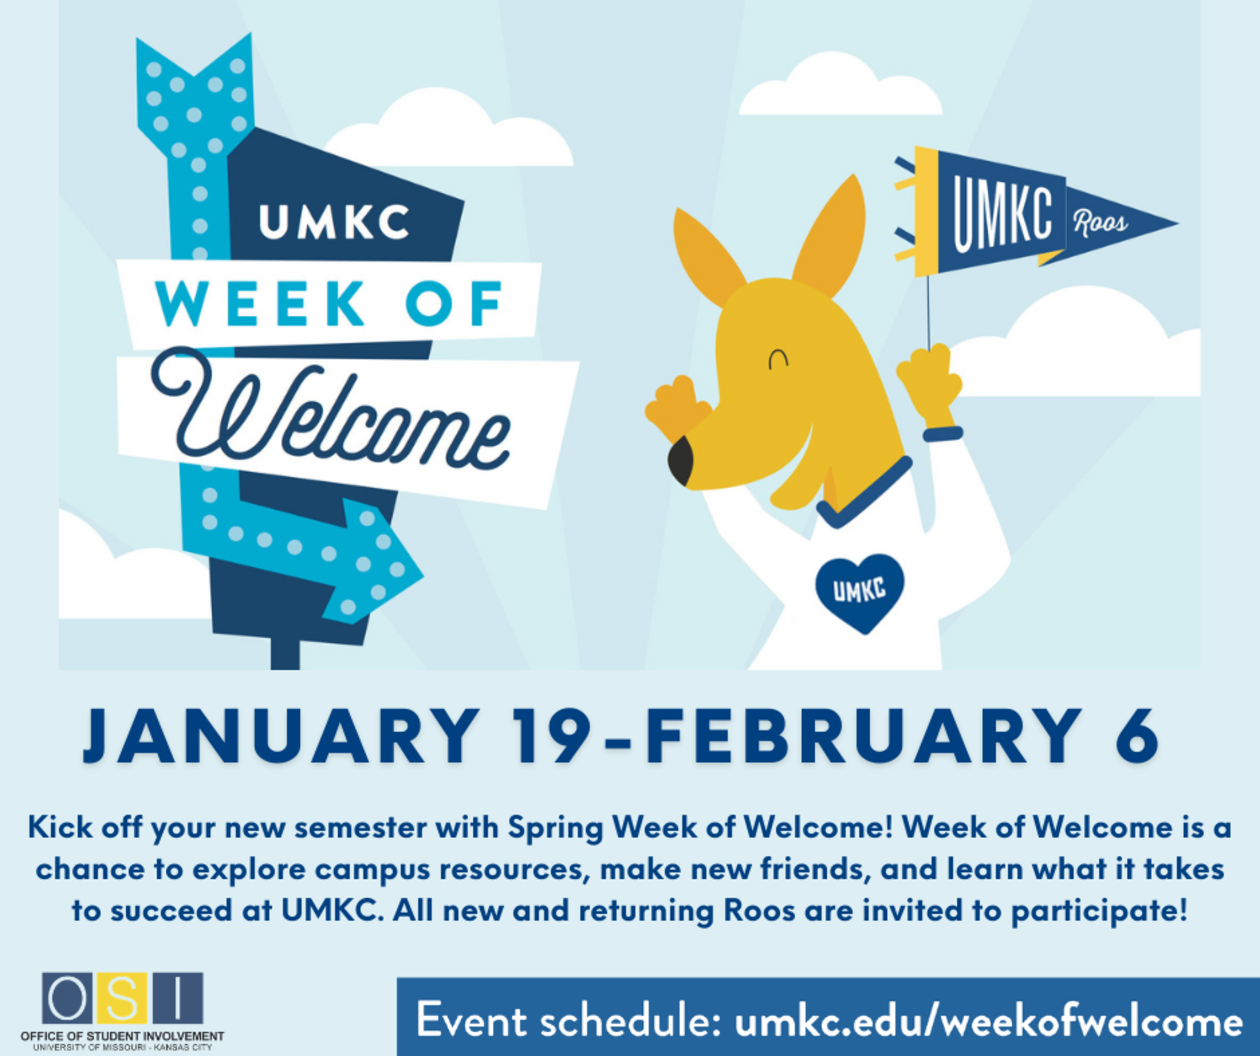 Check out the Schedule of Events!